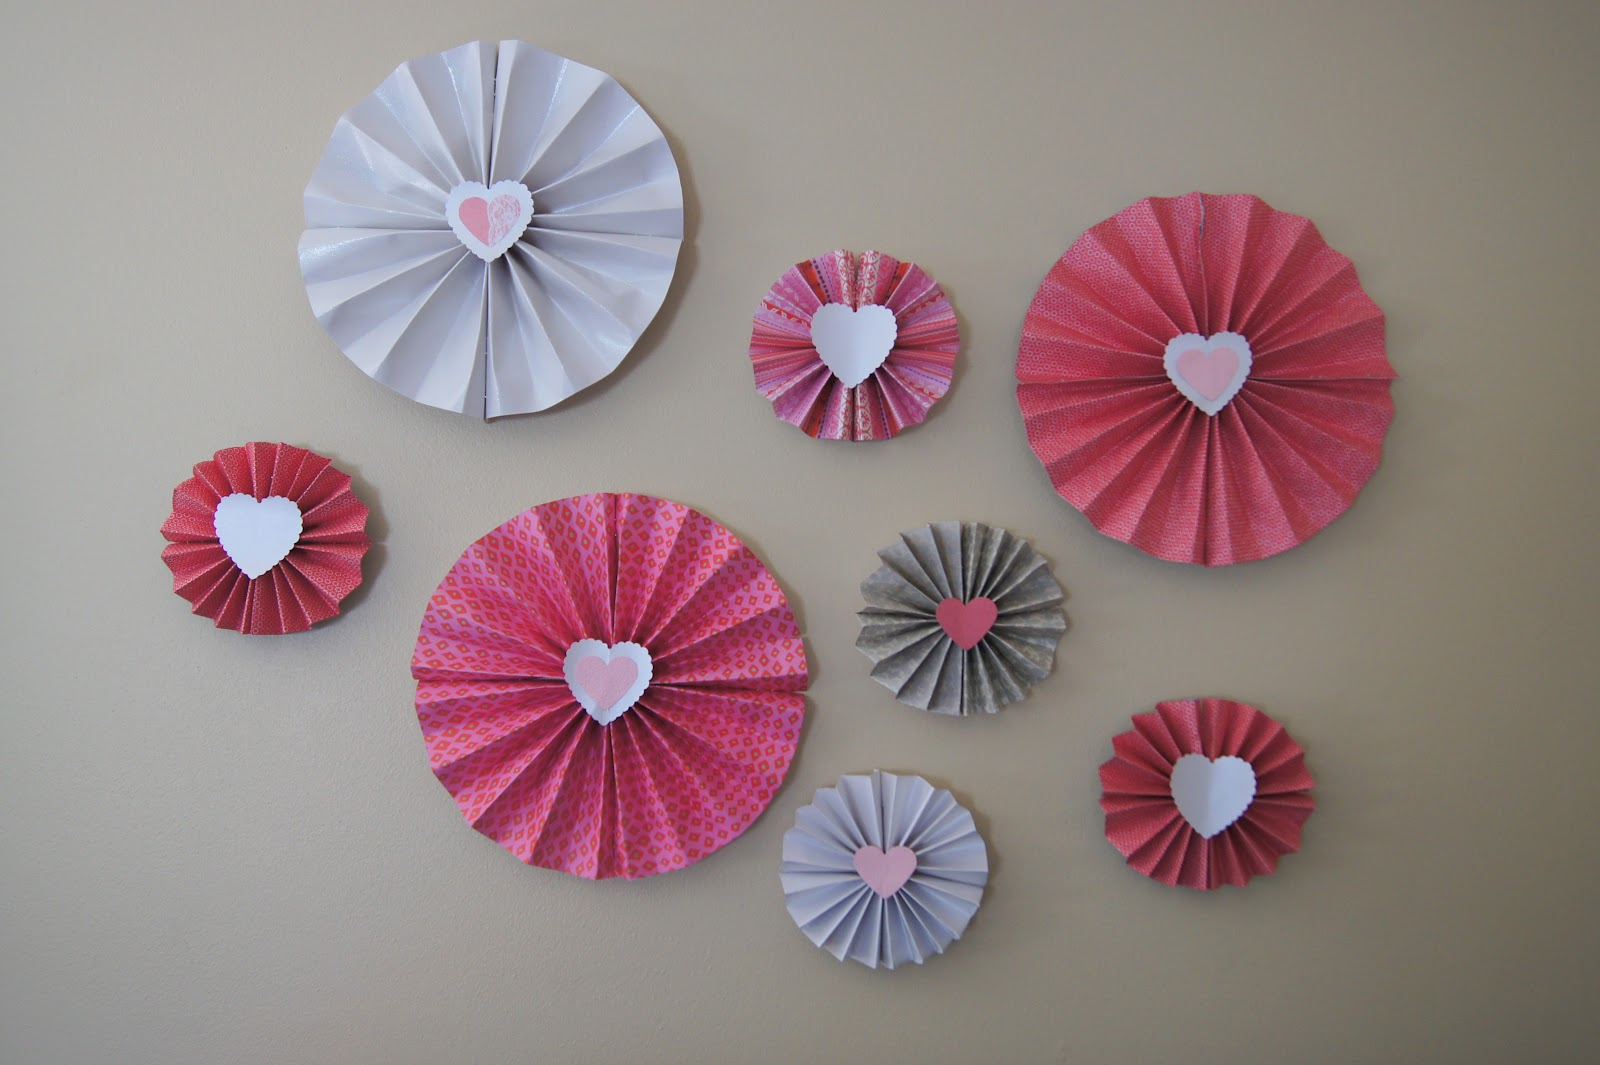 LOVE IN MY HEART: valentine's day decorations ideas 2013 ...